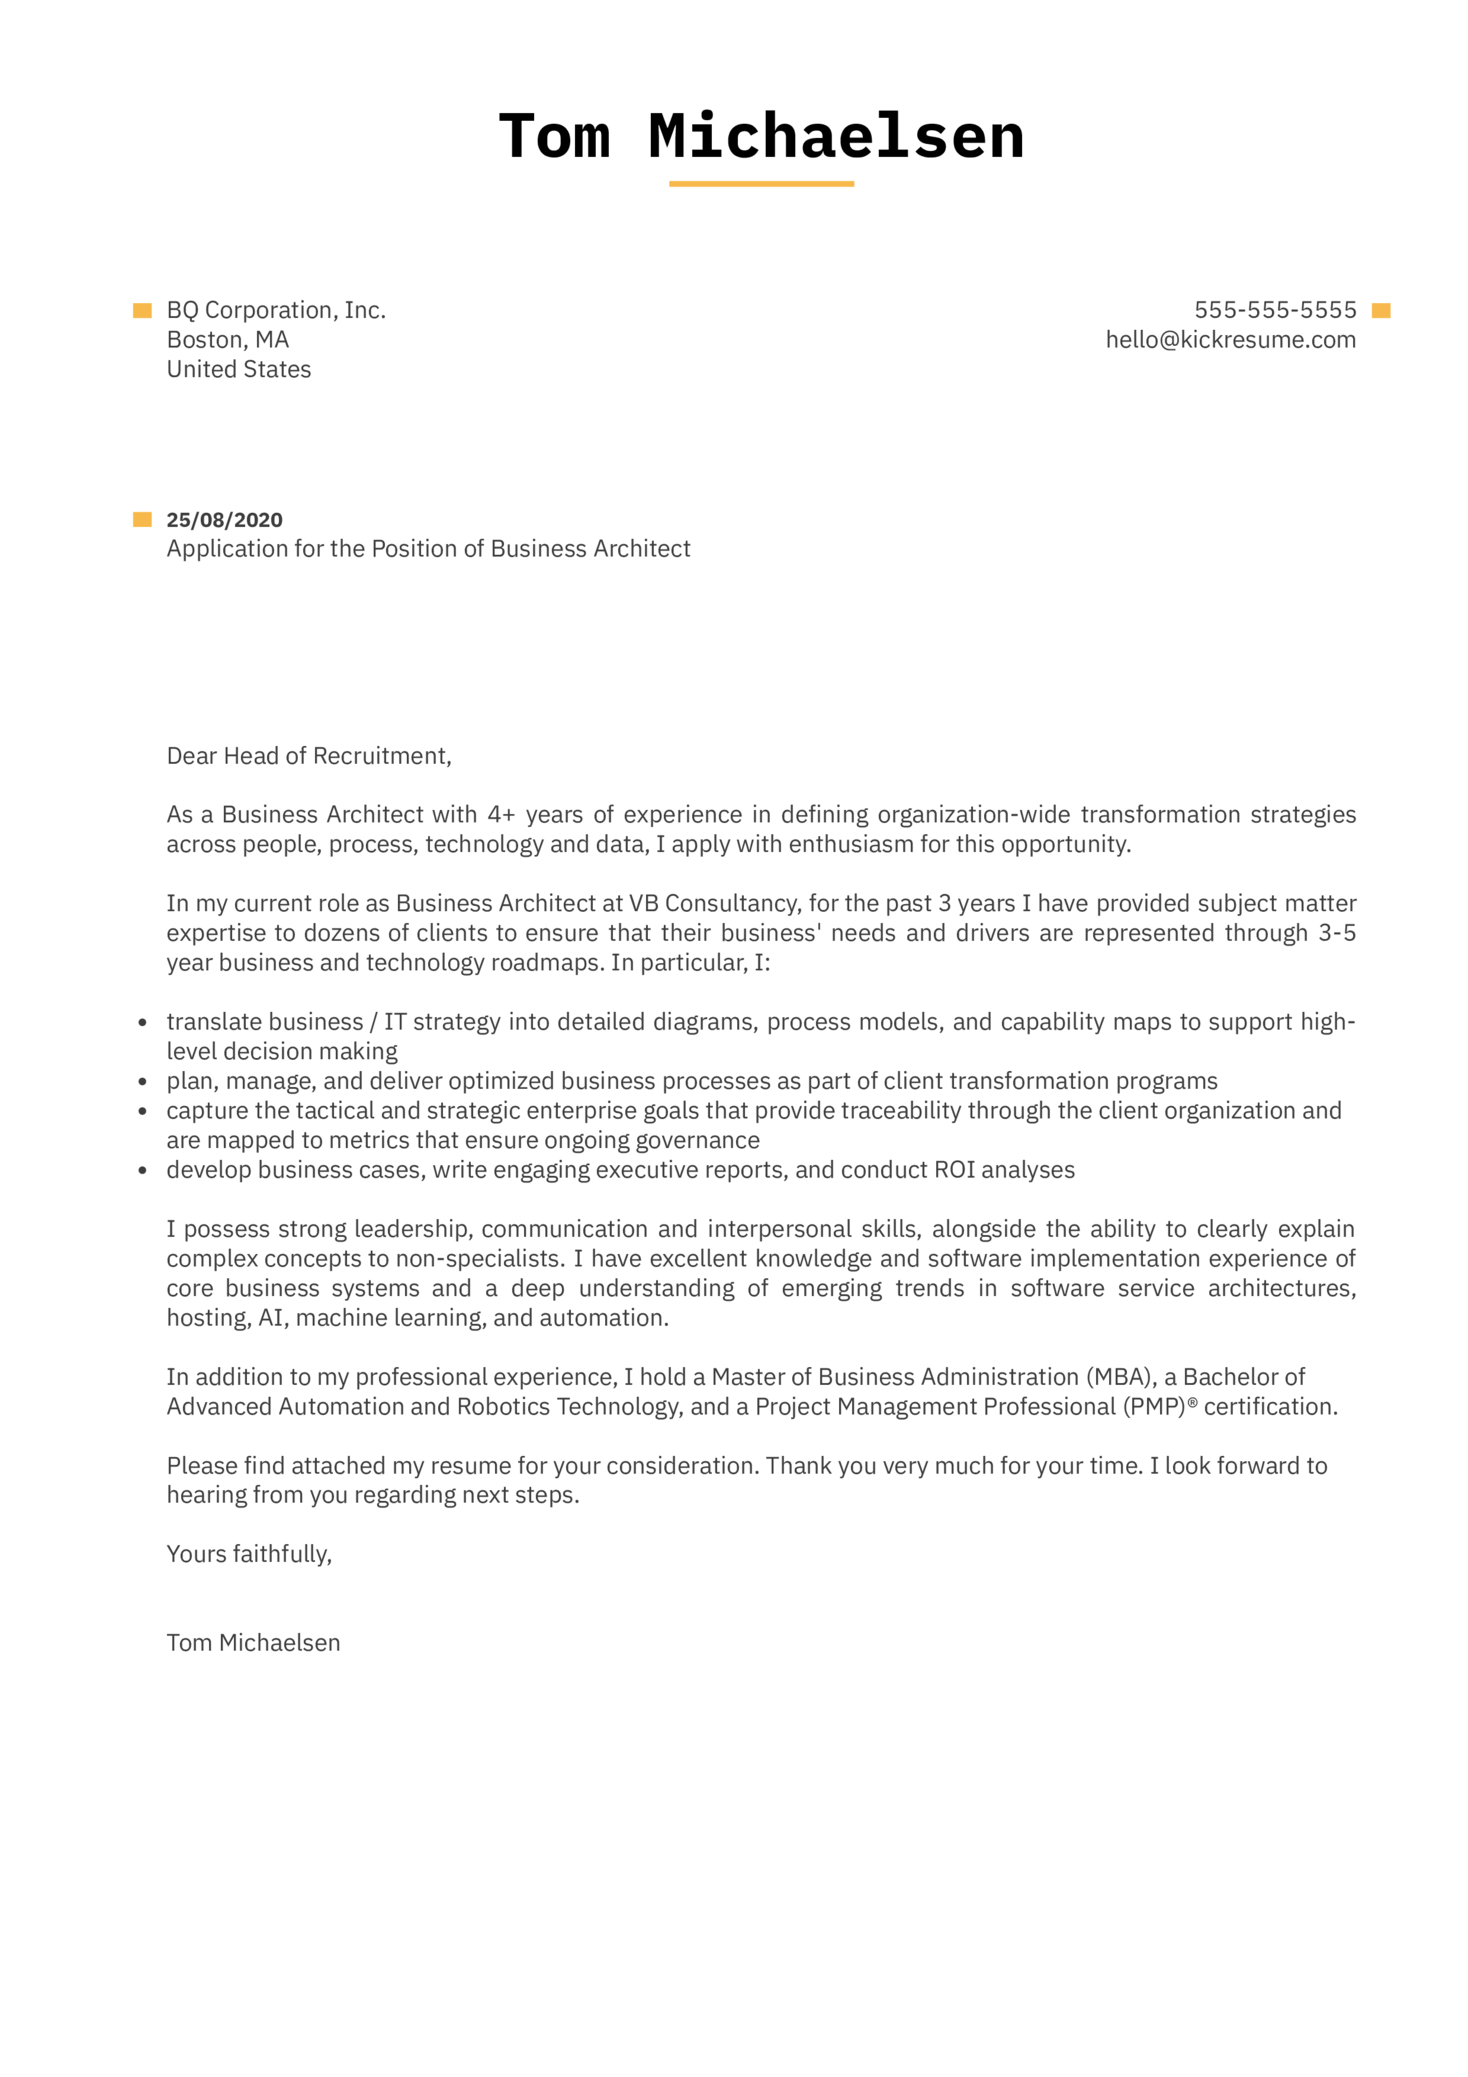 Business Architect Cover Letter Example